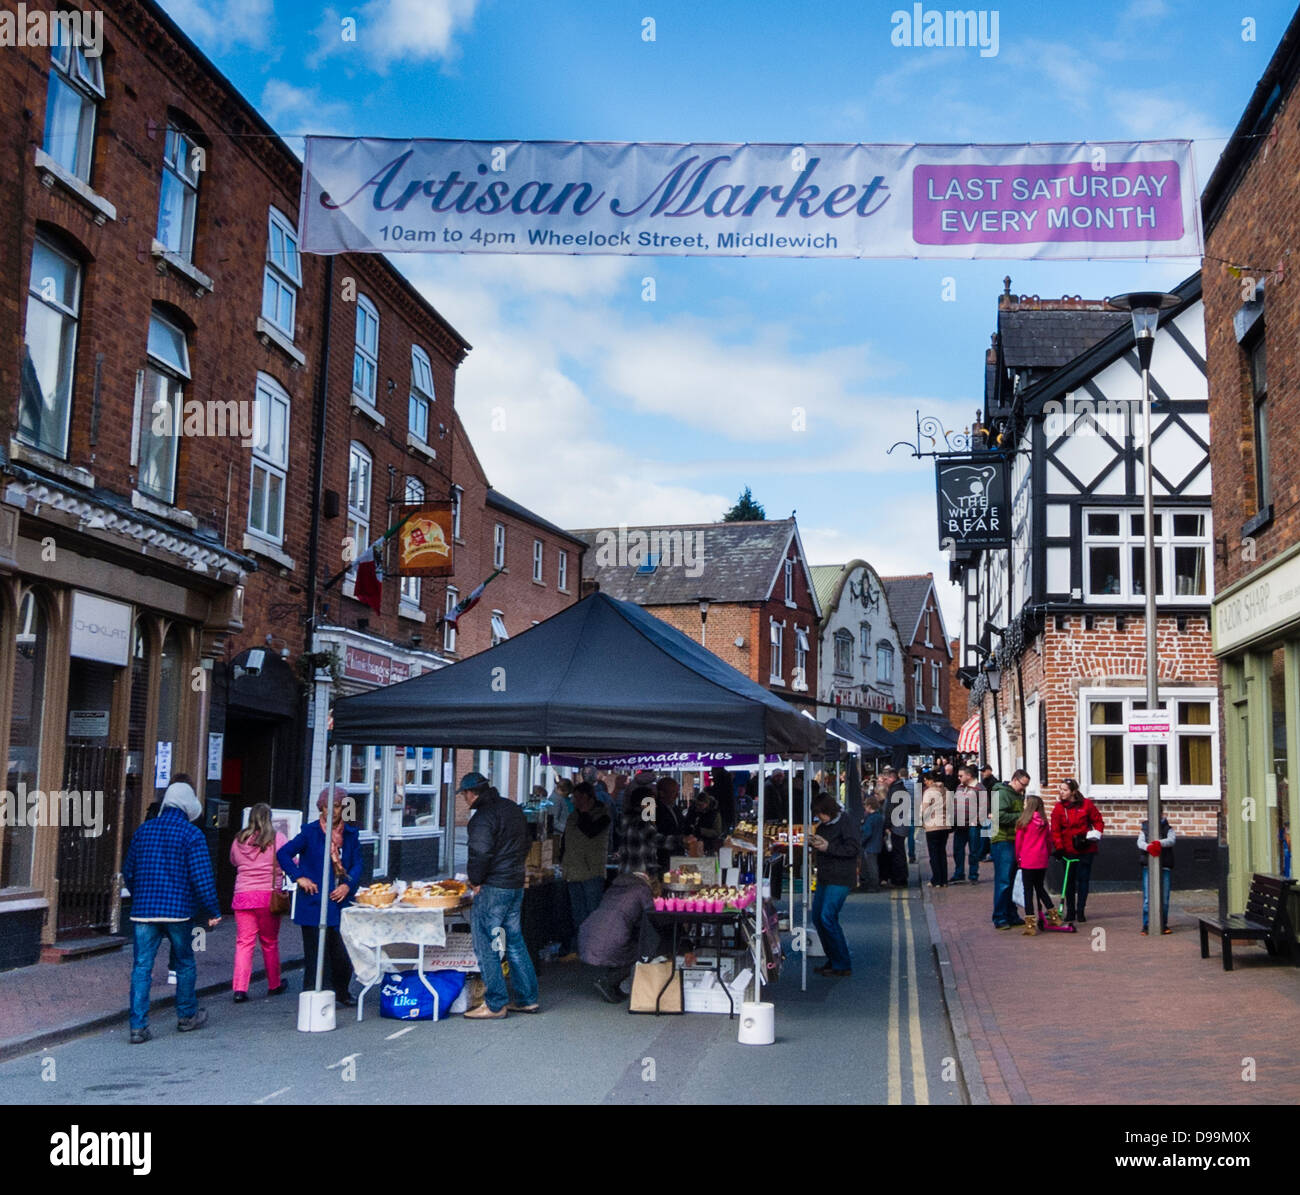 Artisan Market in Middlewich, Cheshire - Stock Image